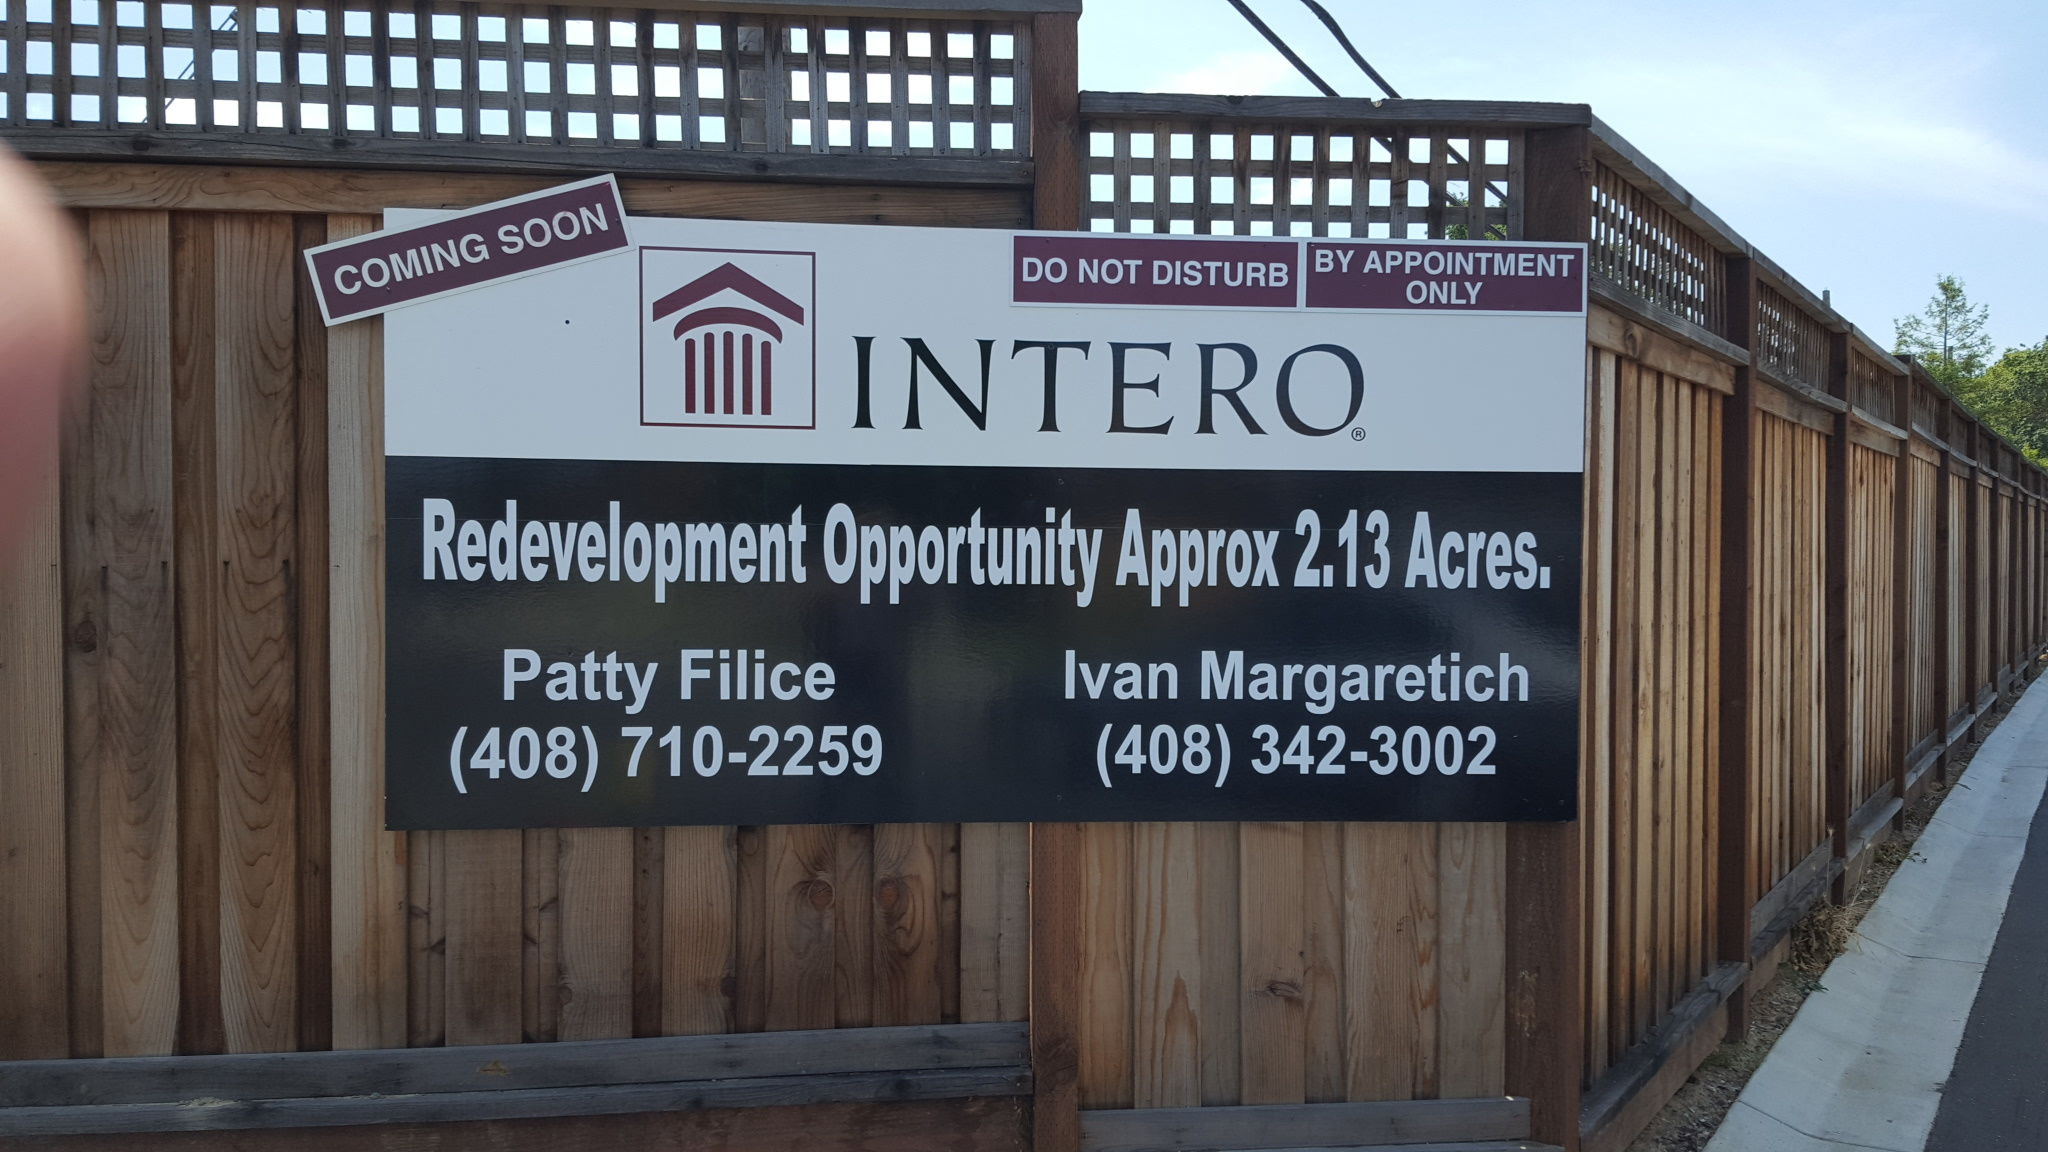 Intero Real Estate For Sale Sign